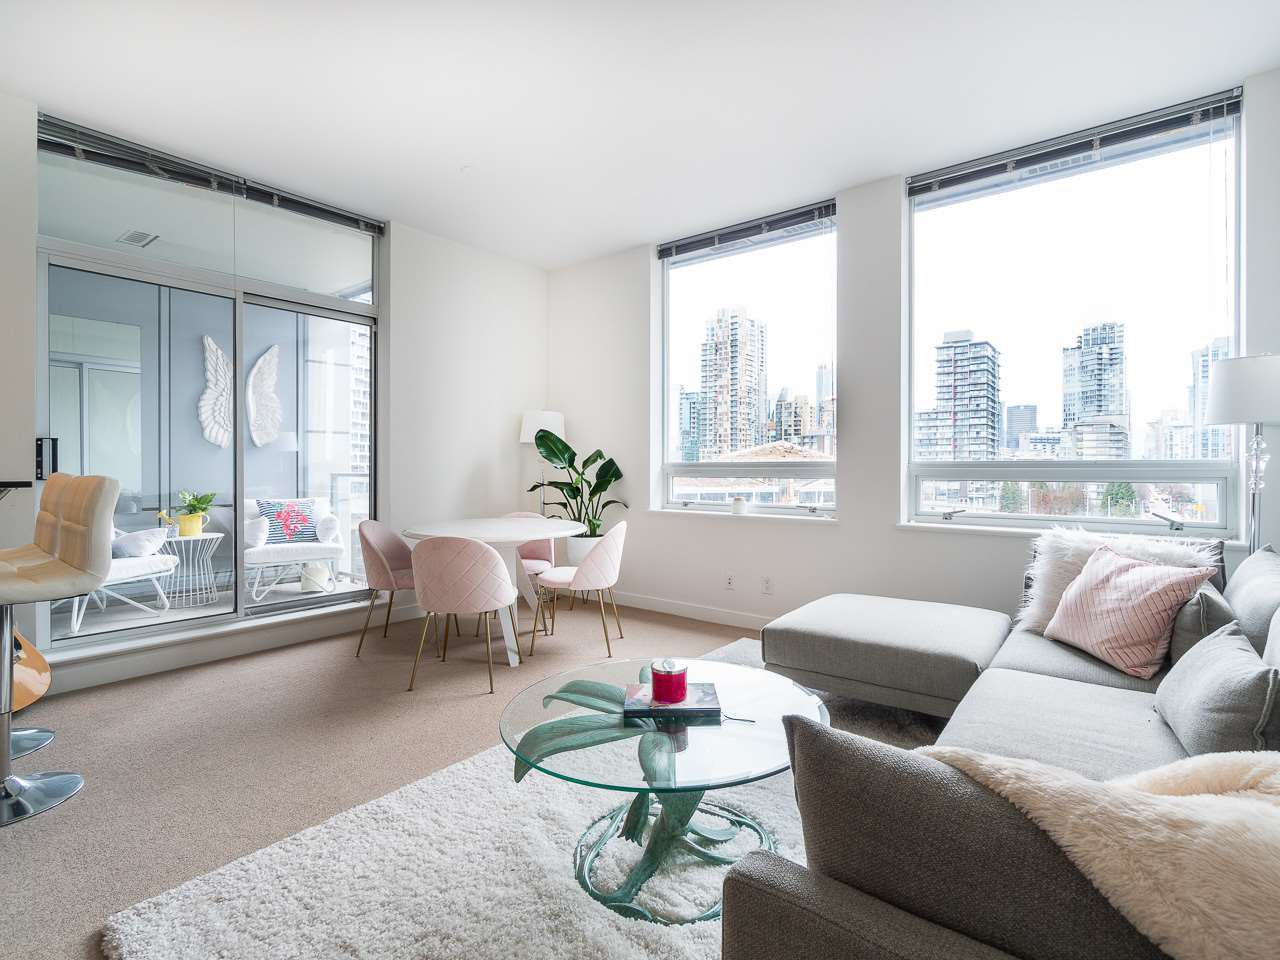 Main Photo: 1106 638 BEACH CRESCENT in Vancouver: Yaletown Condo for sale (Vancouver West)  : MLS®# R2499986